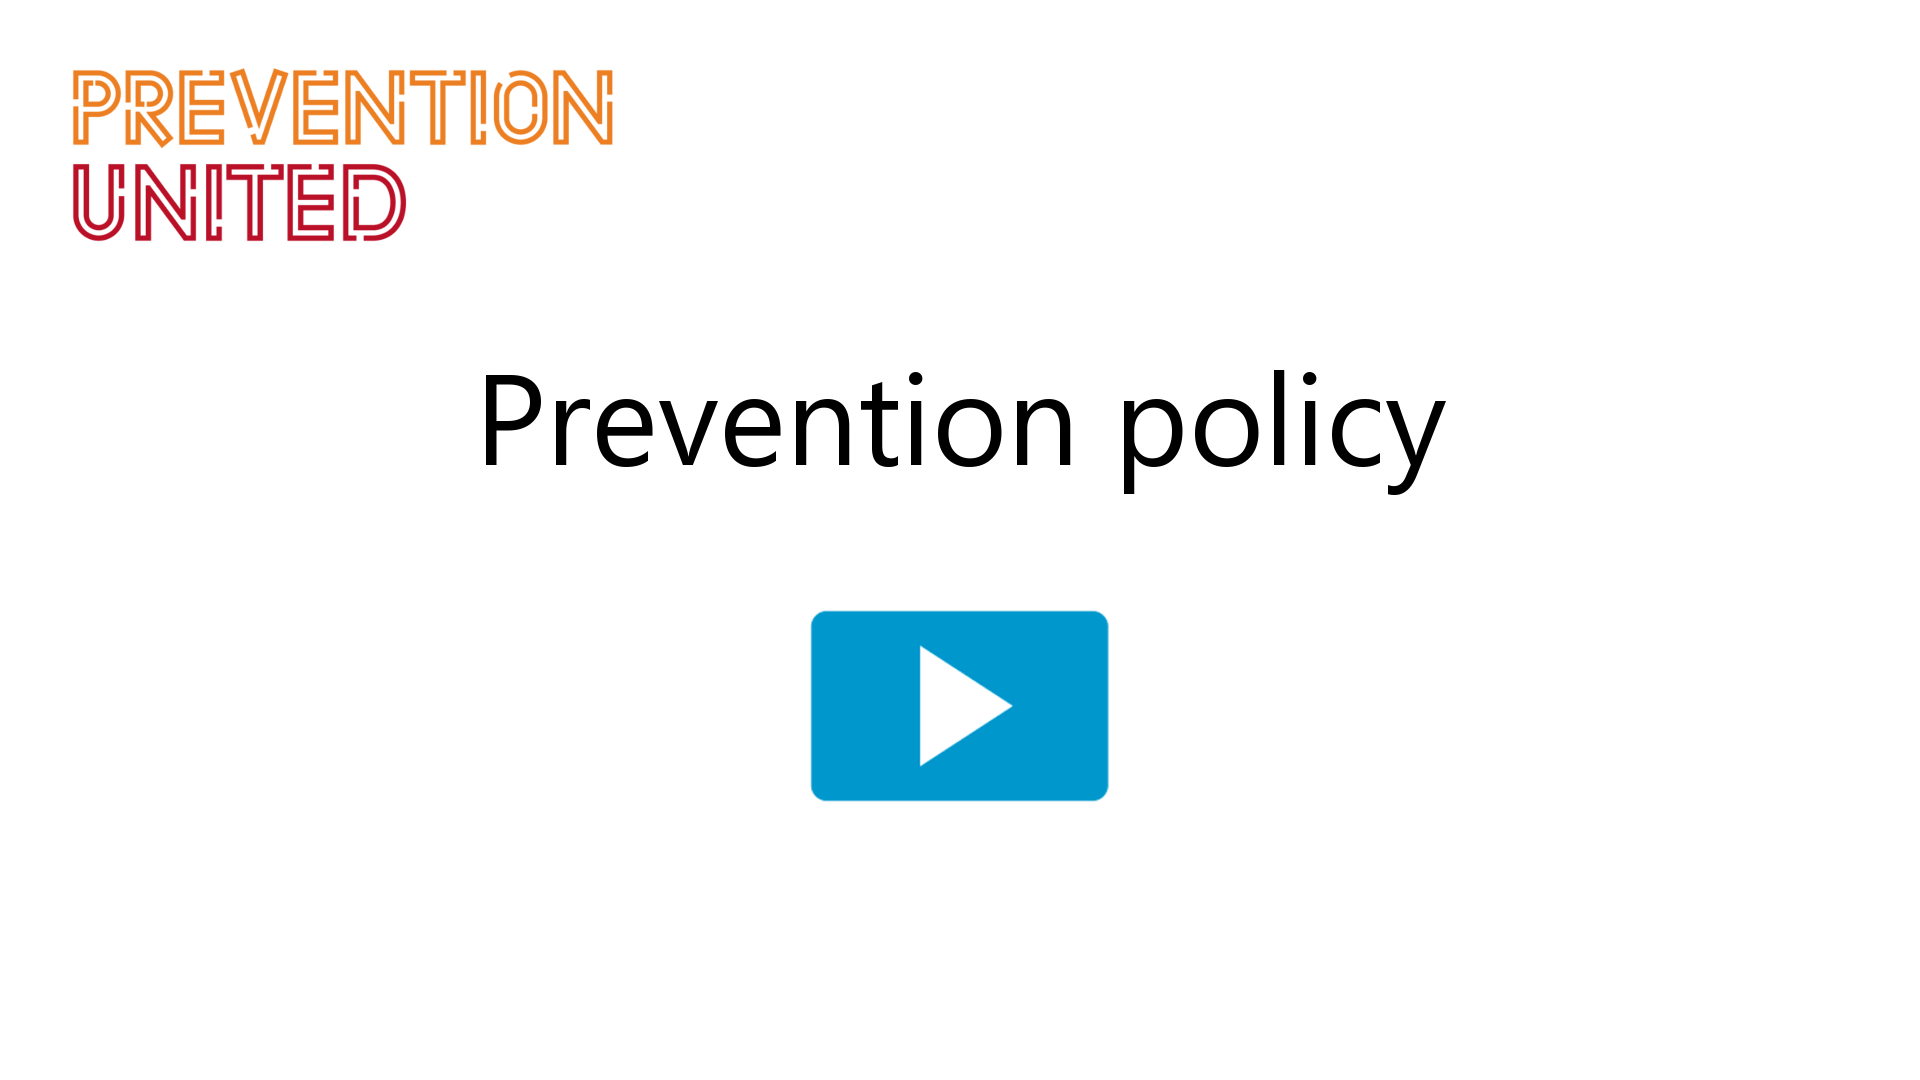 Prevention policy